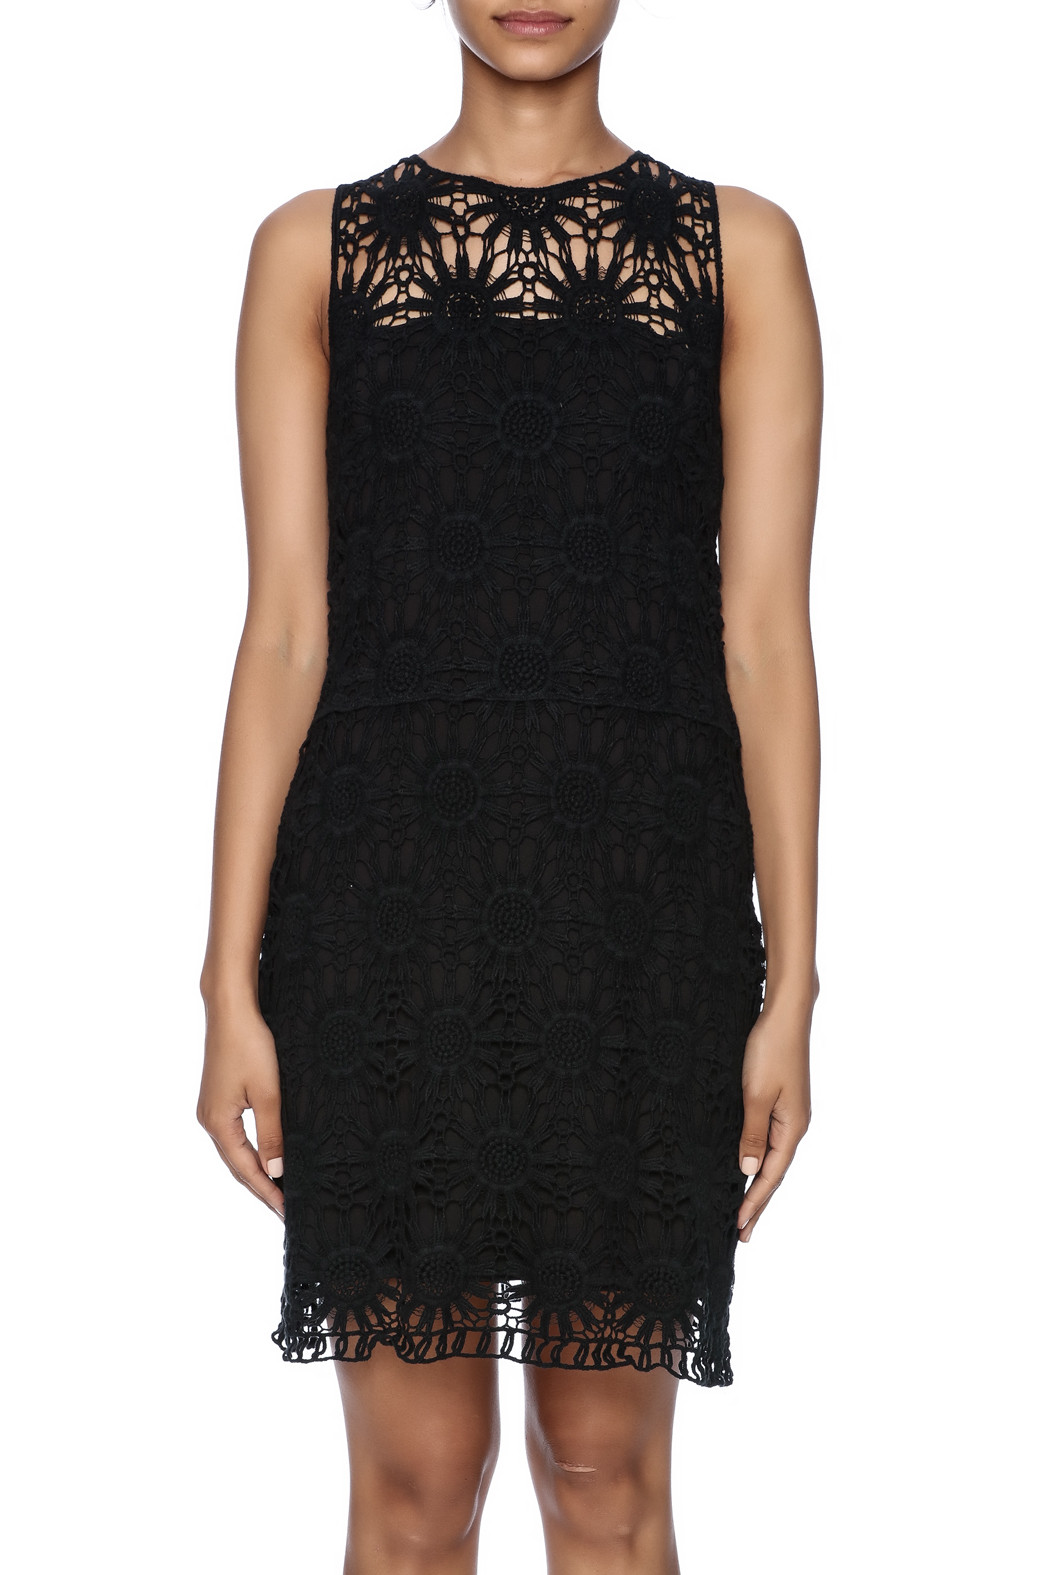 Luxury Macbeth Collection Black Crochet Dress From Michigan by Crochet Sweater Dresses Of Great 44 Photos Crochet Sweater Dresses